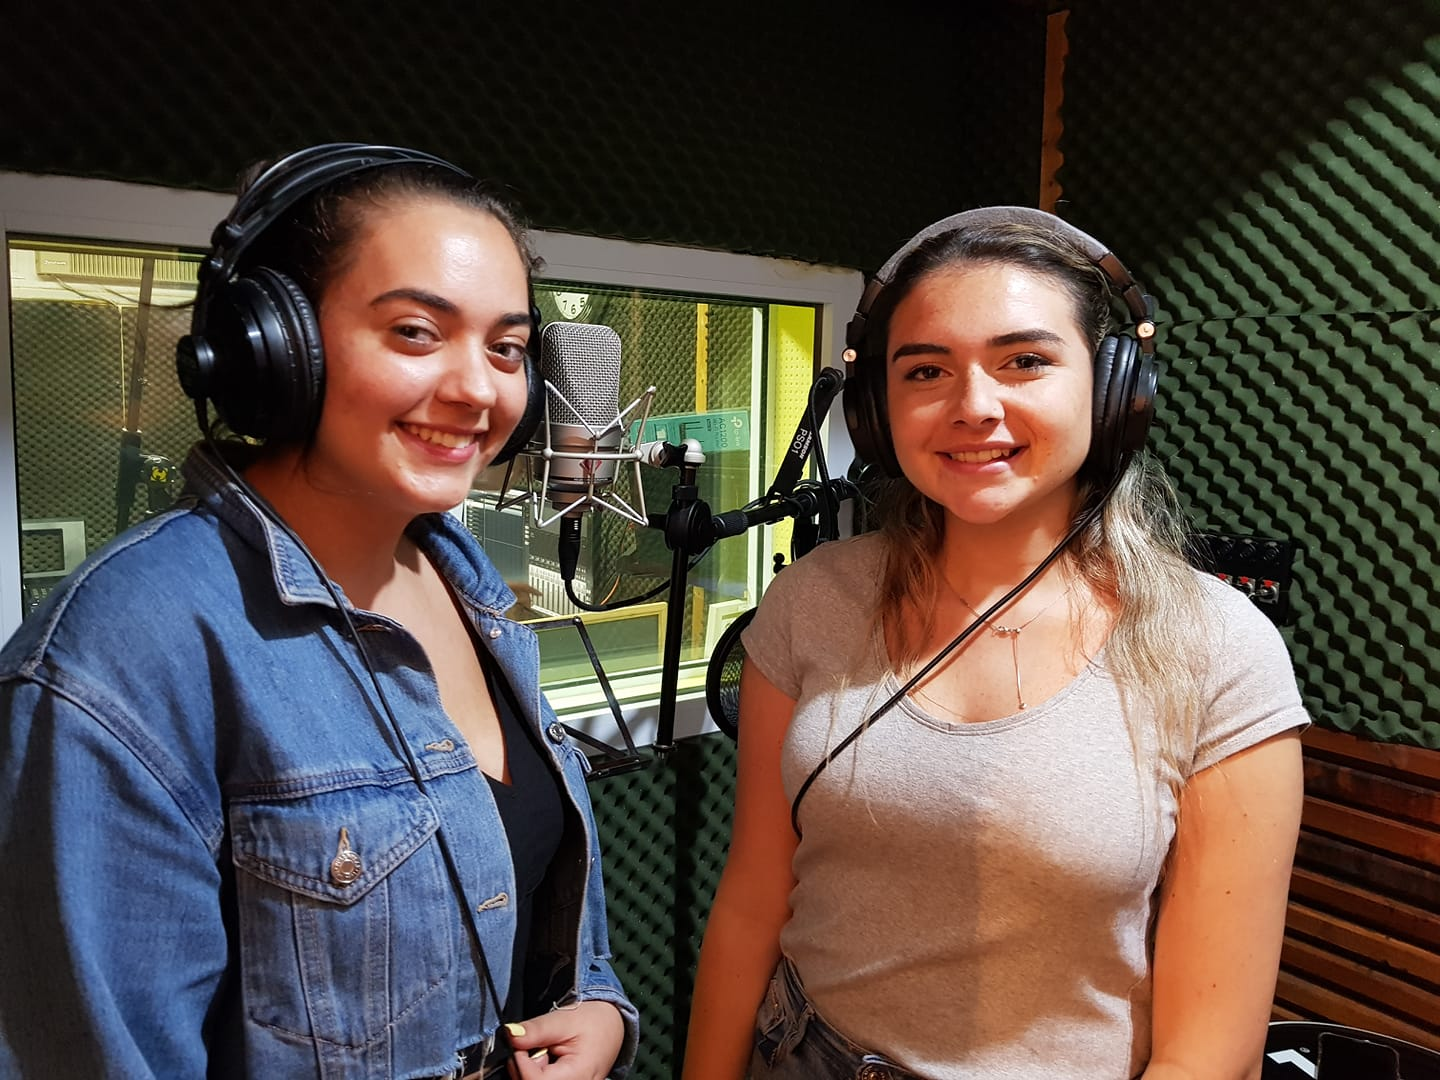 Aramaic singers, Shaked and Eden